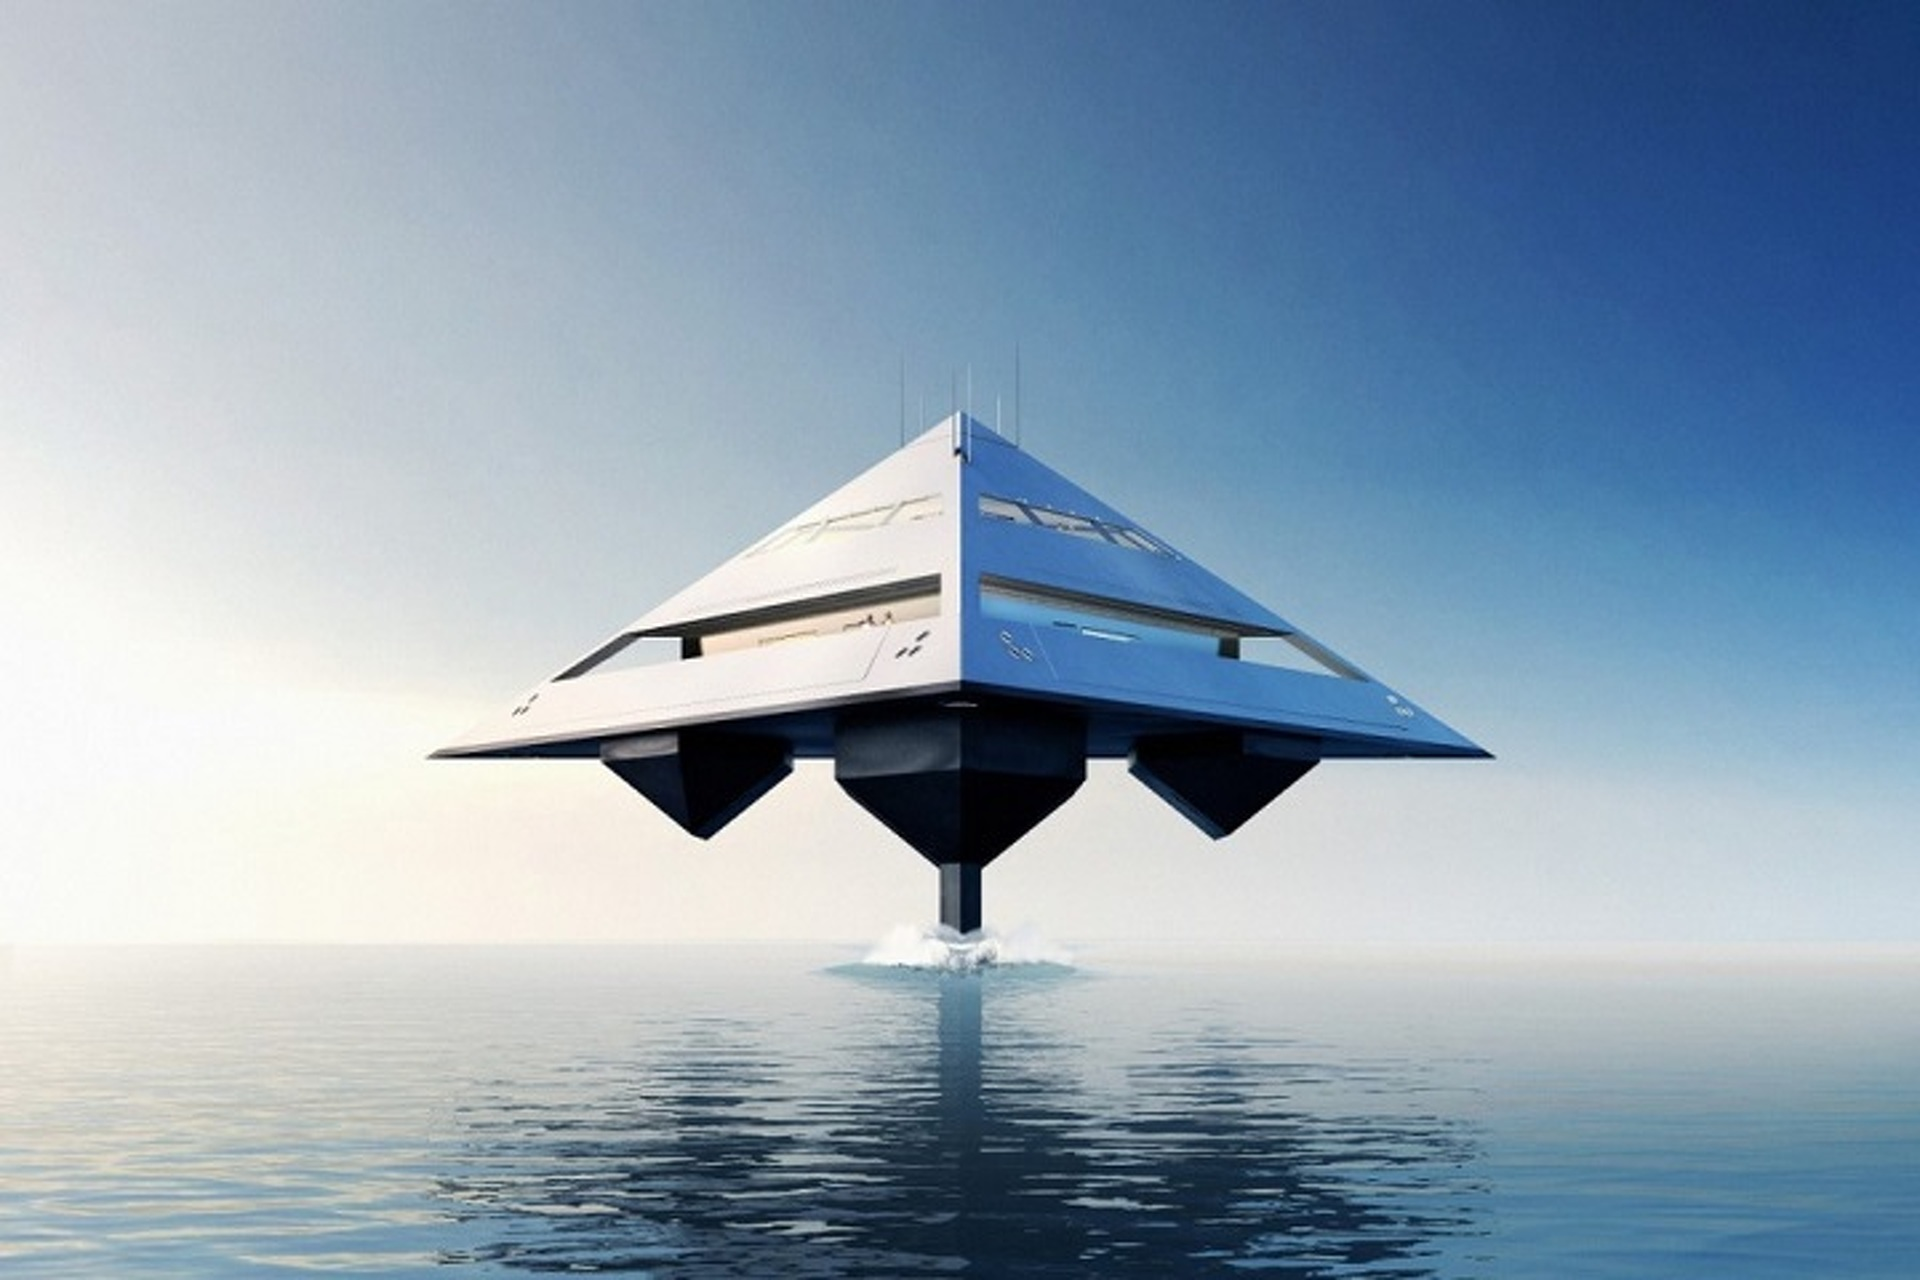 This Radical Superyacht Concept Puts All Other Yachts to Shame